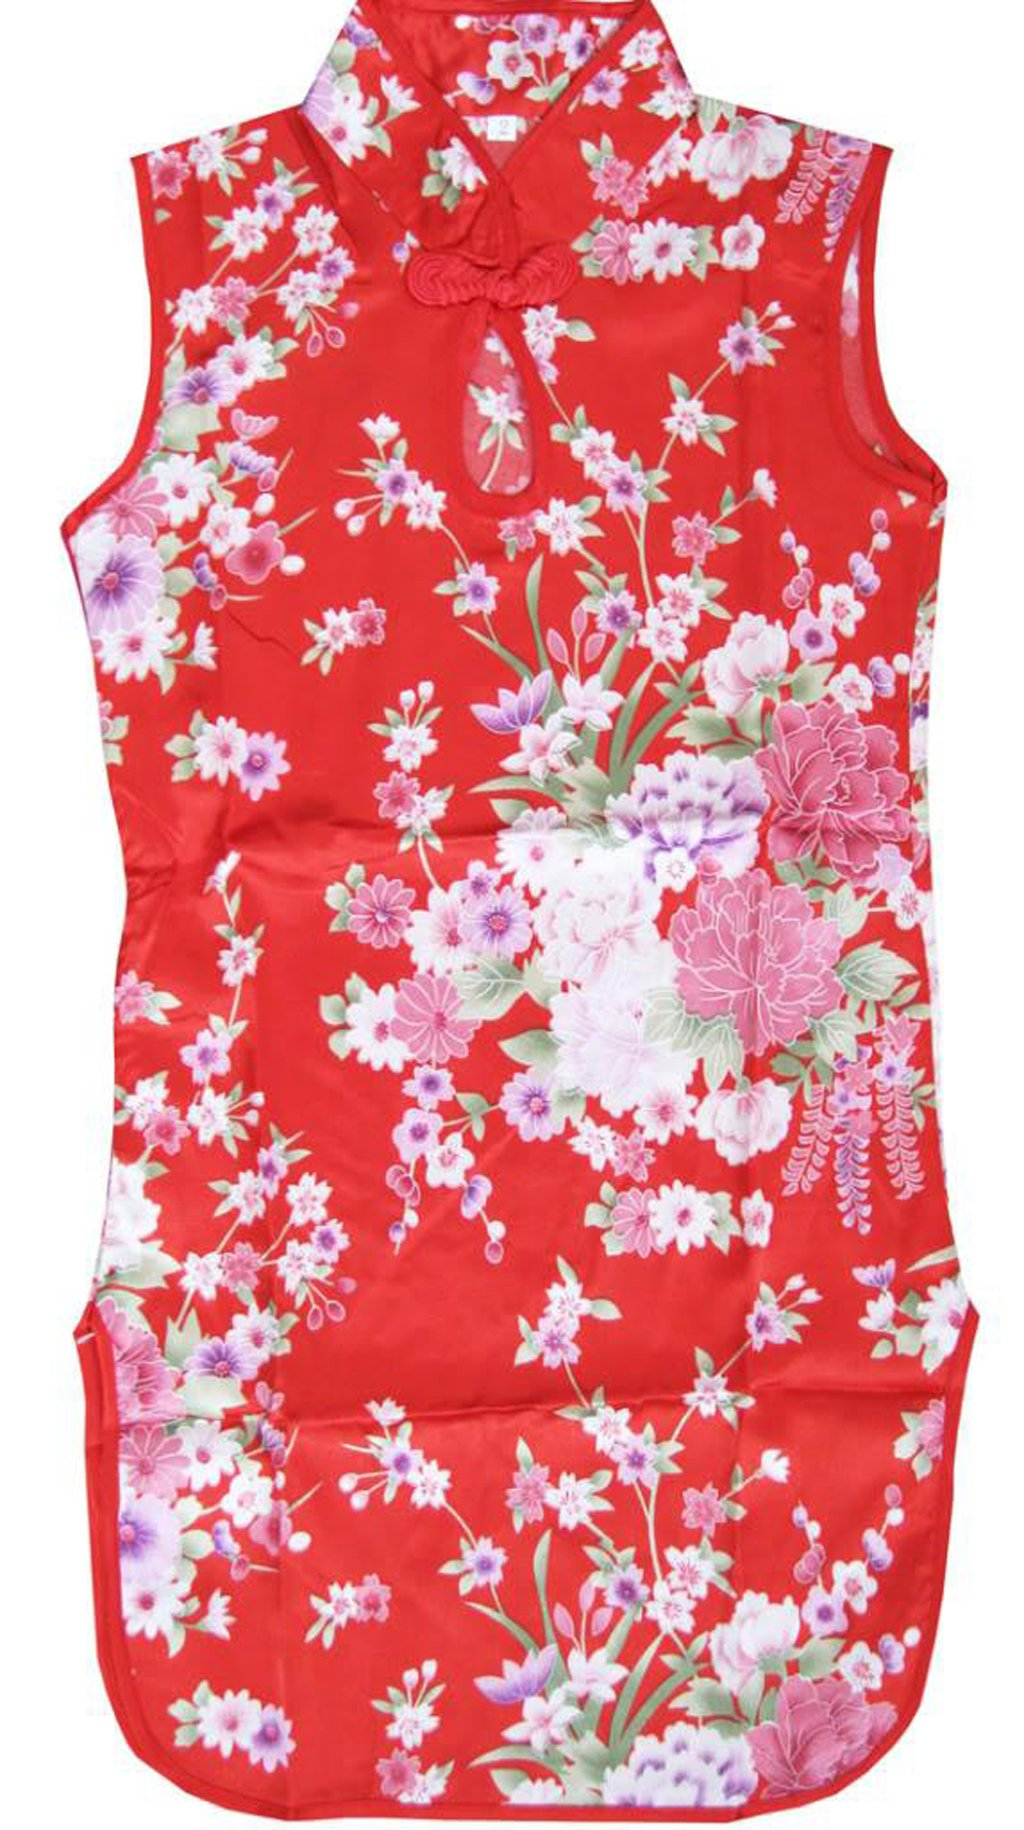 Sunny Fashion Girls Dress Artificial Silk Cheongsam Hot Pink Size 12-18m